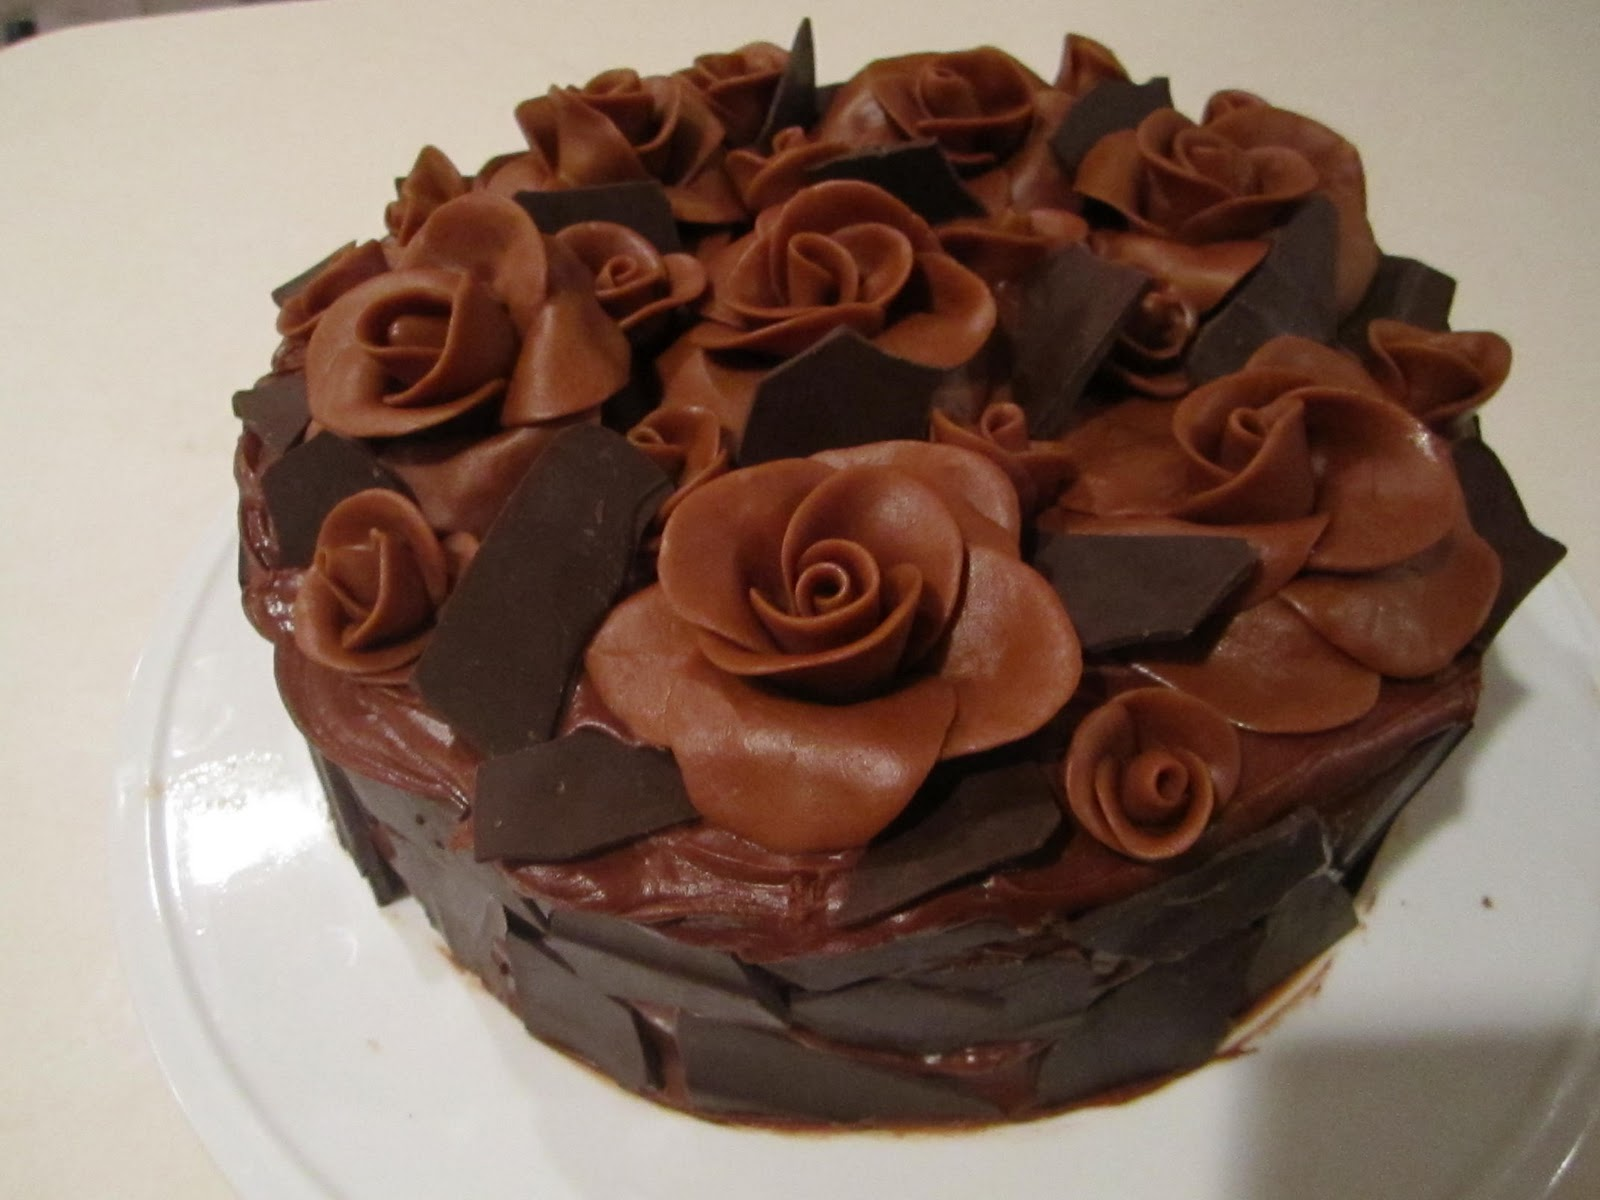 Frosted Insanity: Death by chocolate with chocolate roses for Kira